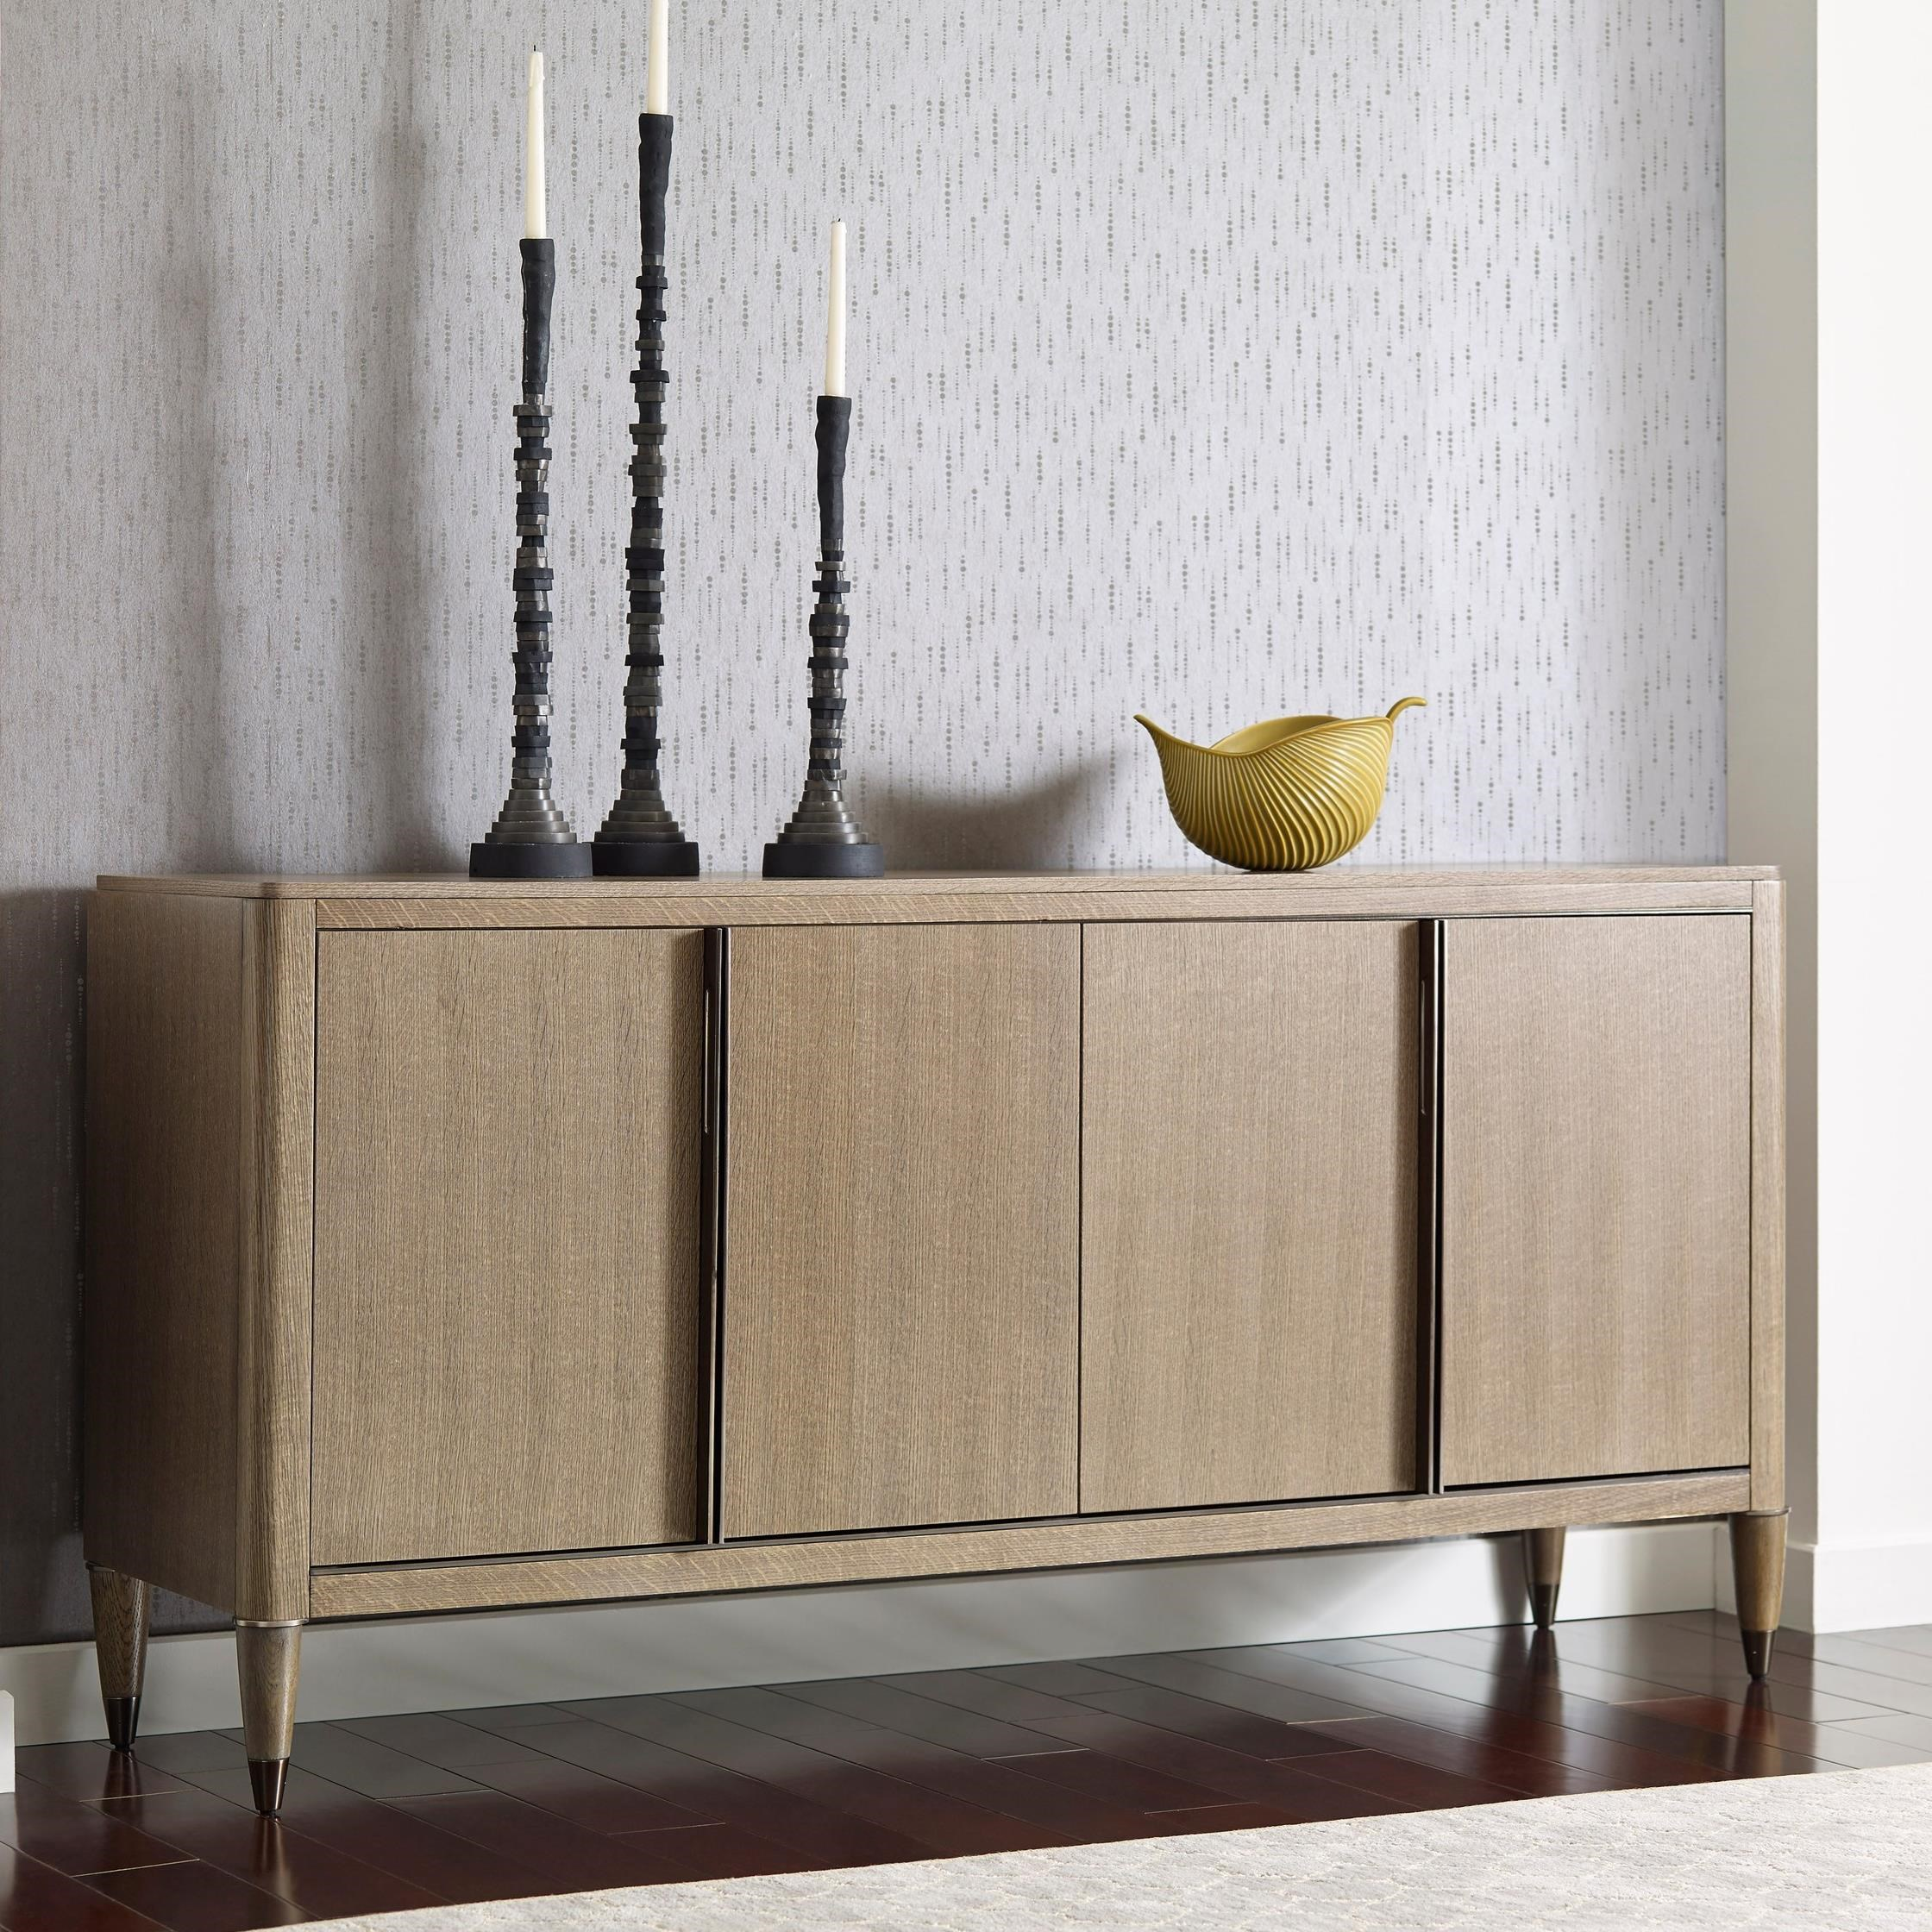 Ad Modern Classics Darby Credenza by American Drew at Alison Craig Home Furnishings